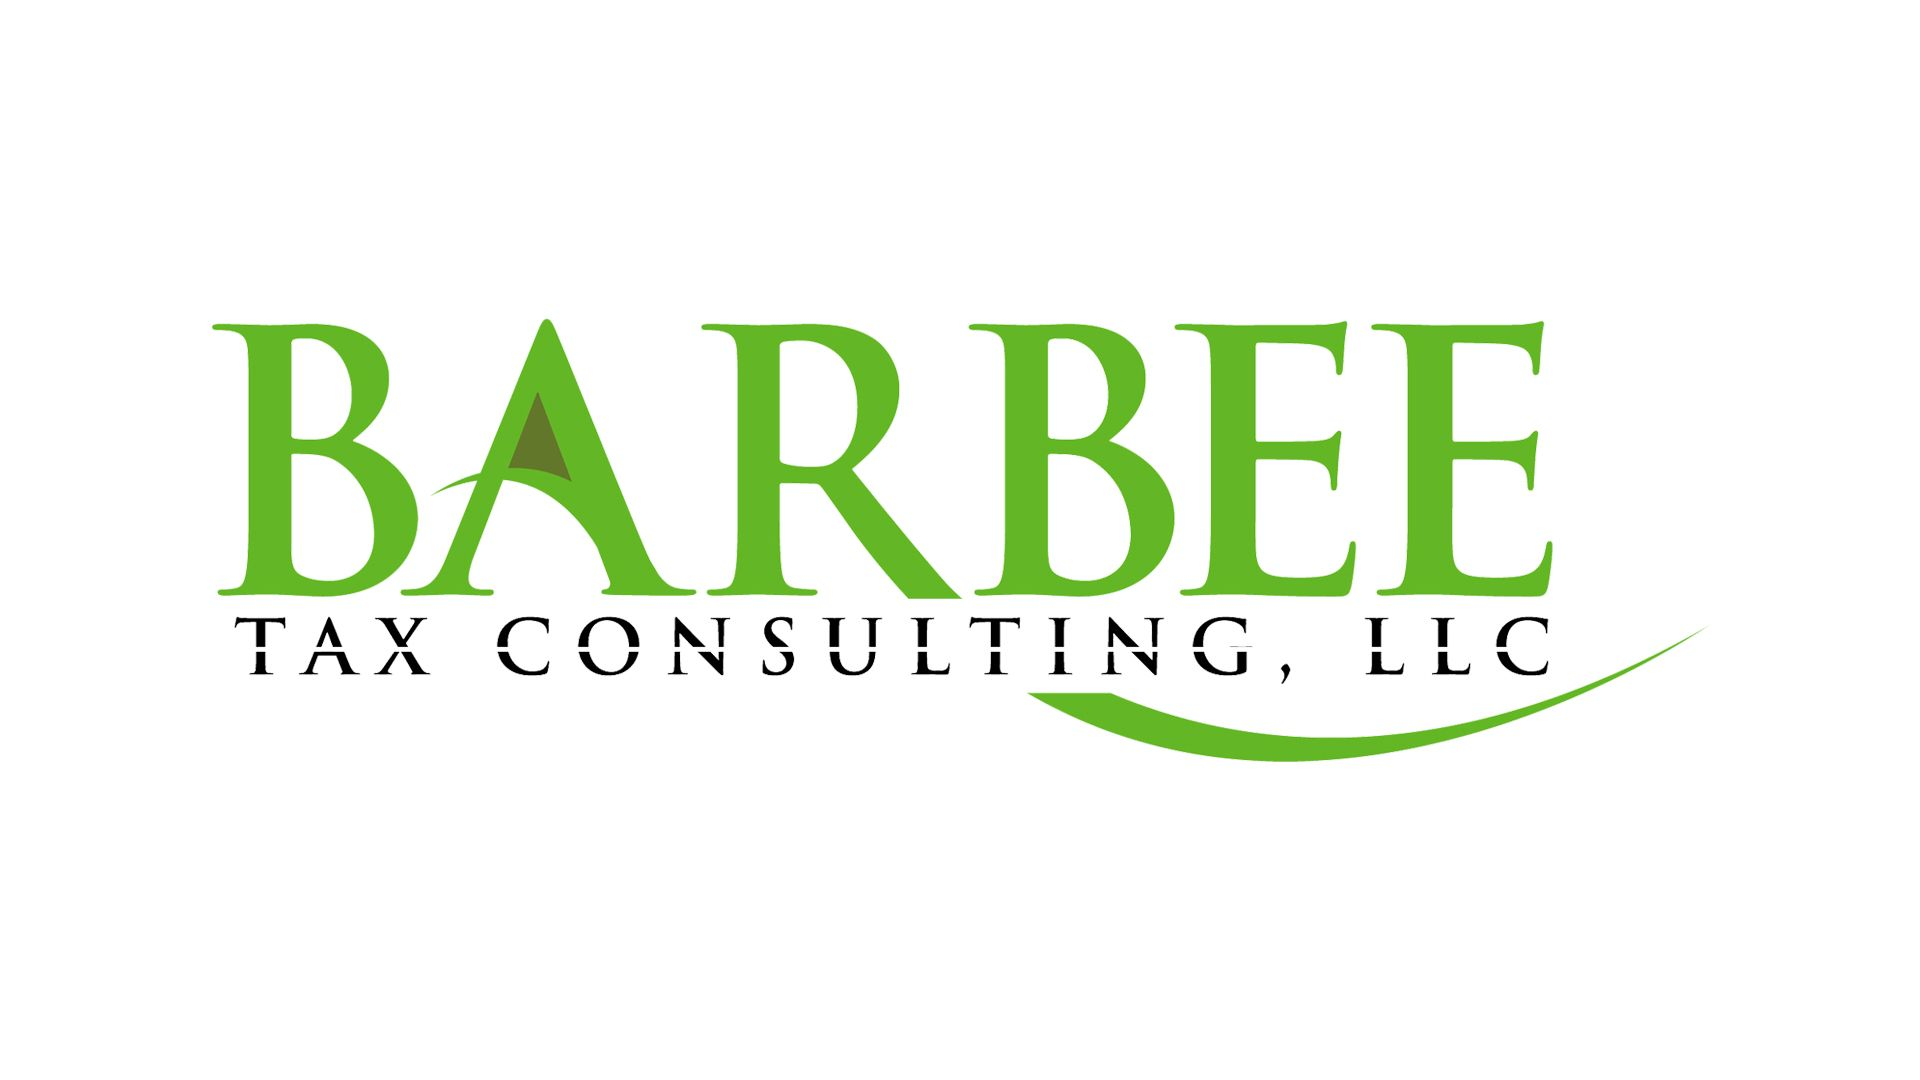 Barbee Tax Consulting, LLC